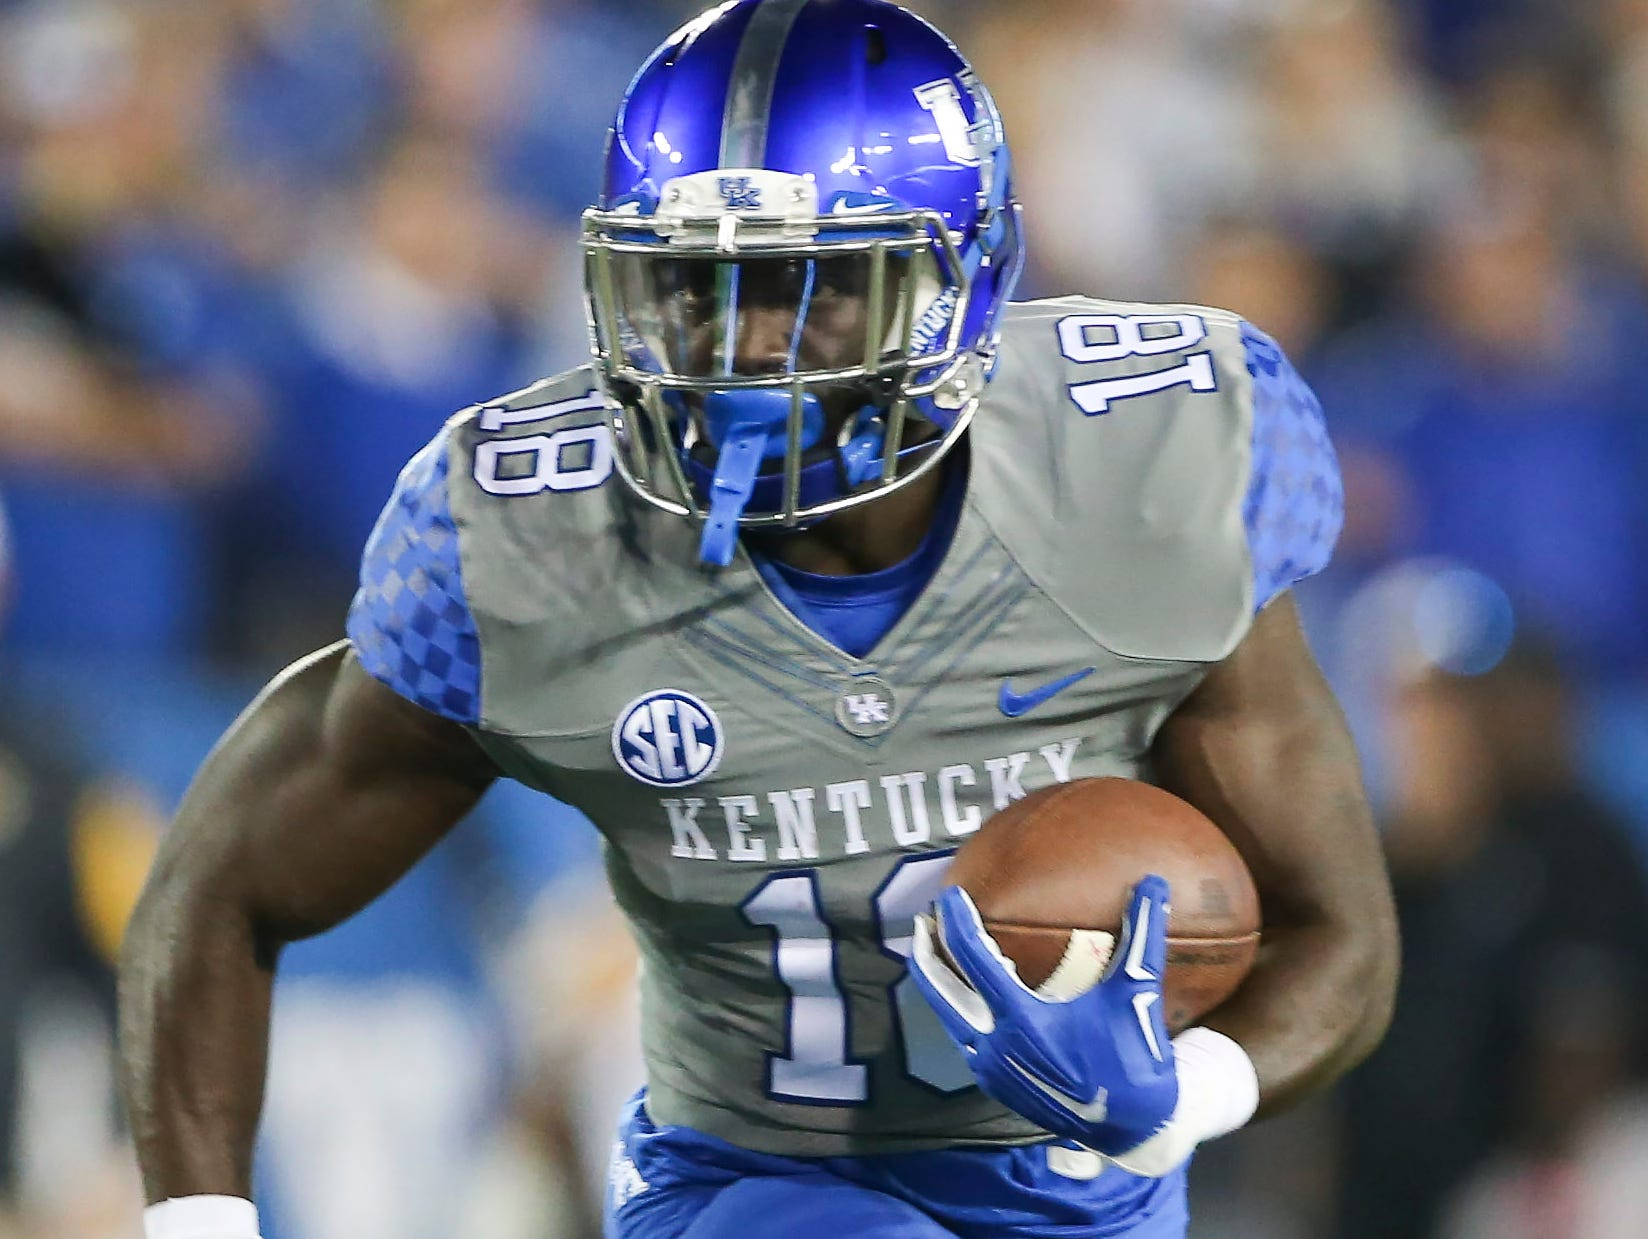 Kentucky running back Stanley Williams runs the ball during the first half of an NCAA college football game against Missouri, Saturday, Sept. 26, 2015, in Lexington, Ky. Kentucky won the game 21-13.